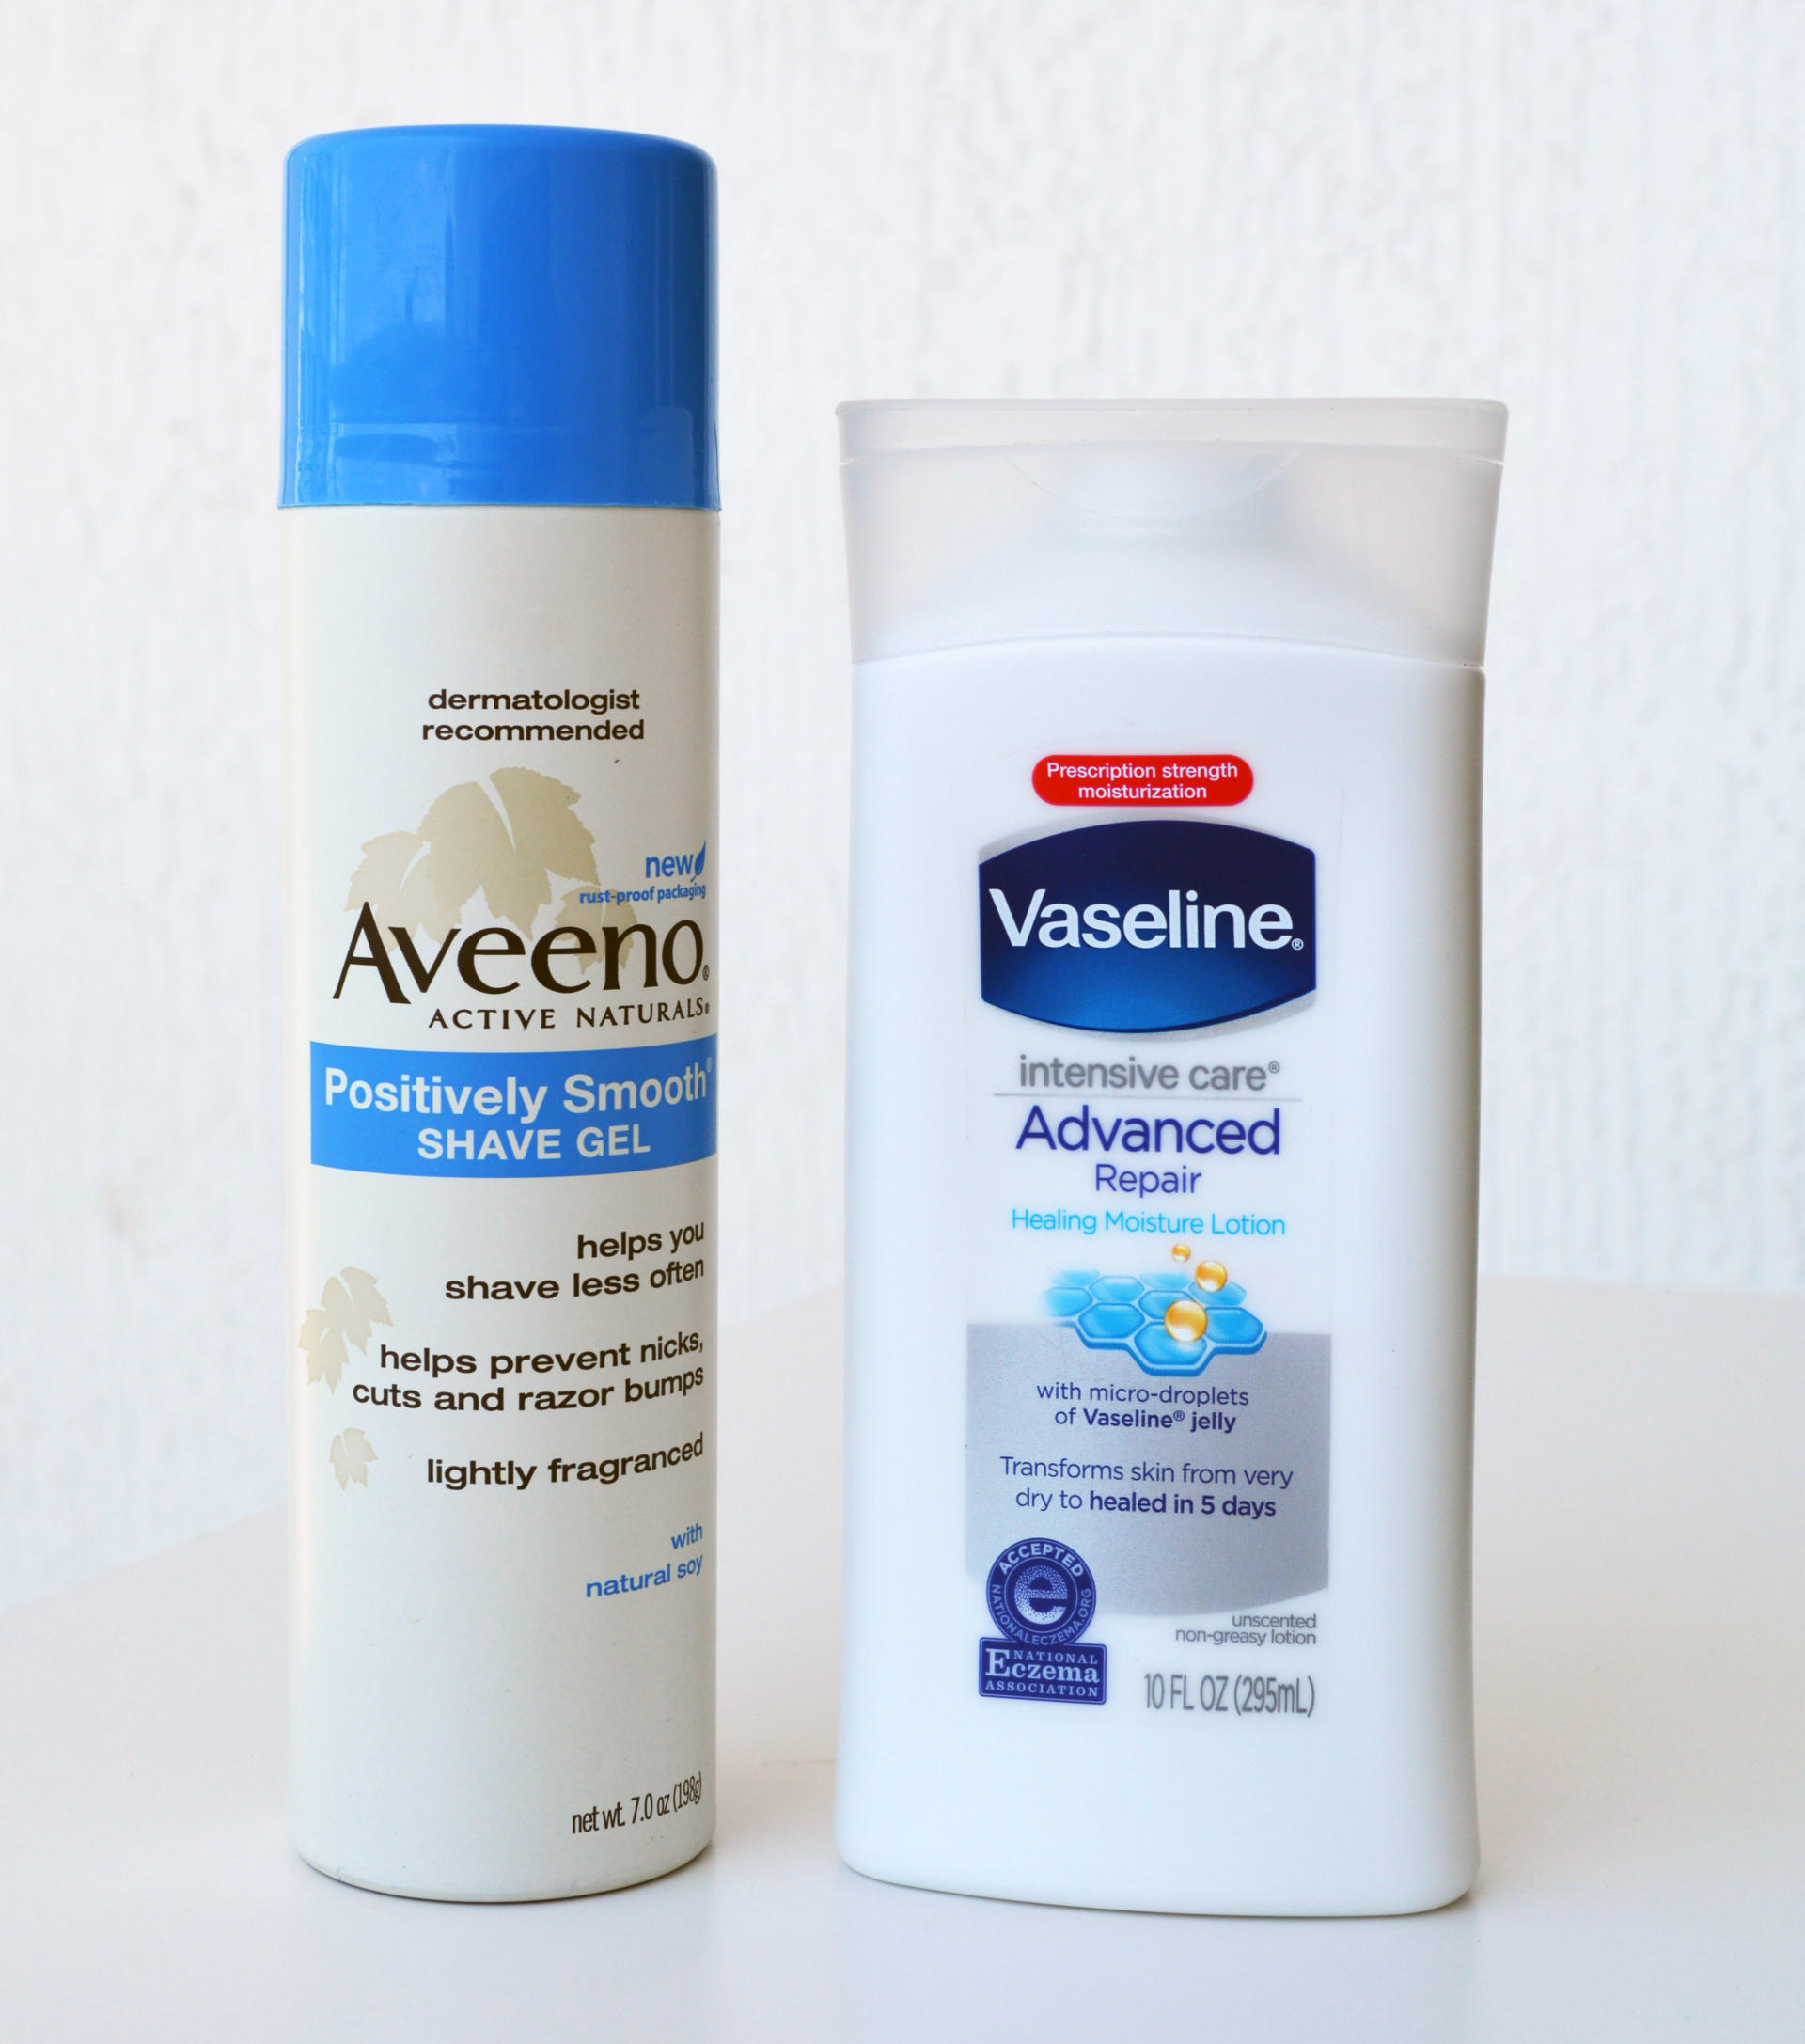 Aveeno Positively Smooth Moisturizing Shave Gel, Vaseline Intensive Care Advanced Repair Healing Moisture Lotion